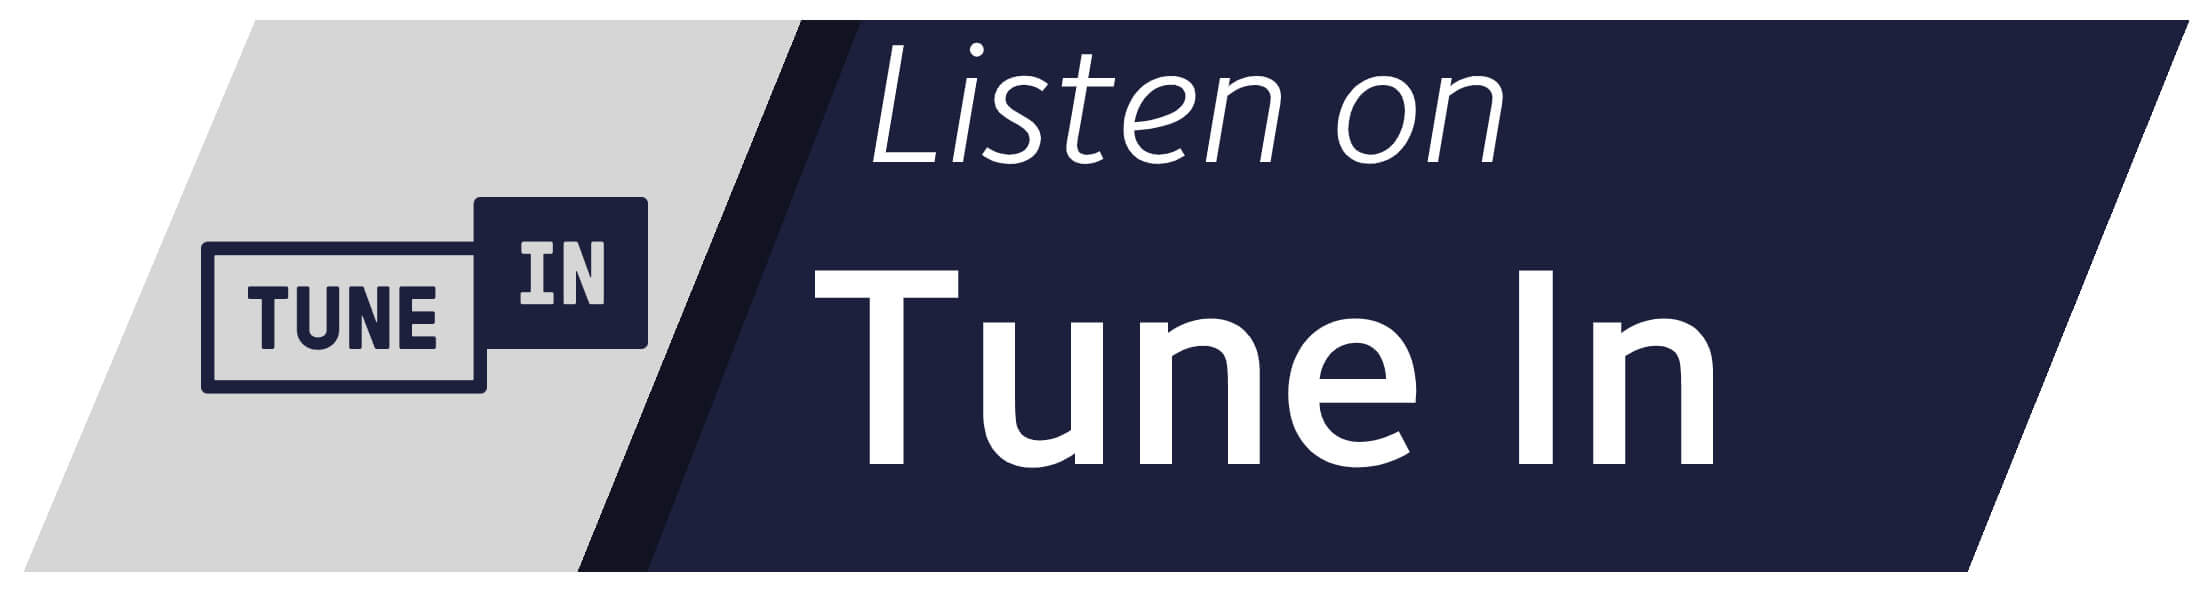 Podcasts for Entrepreneurs on Tune In